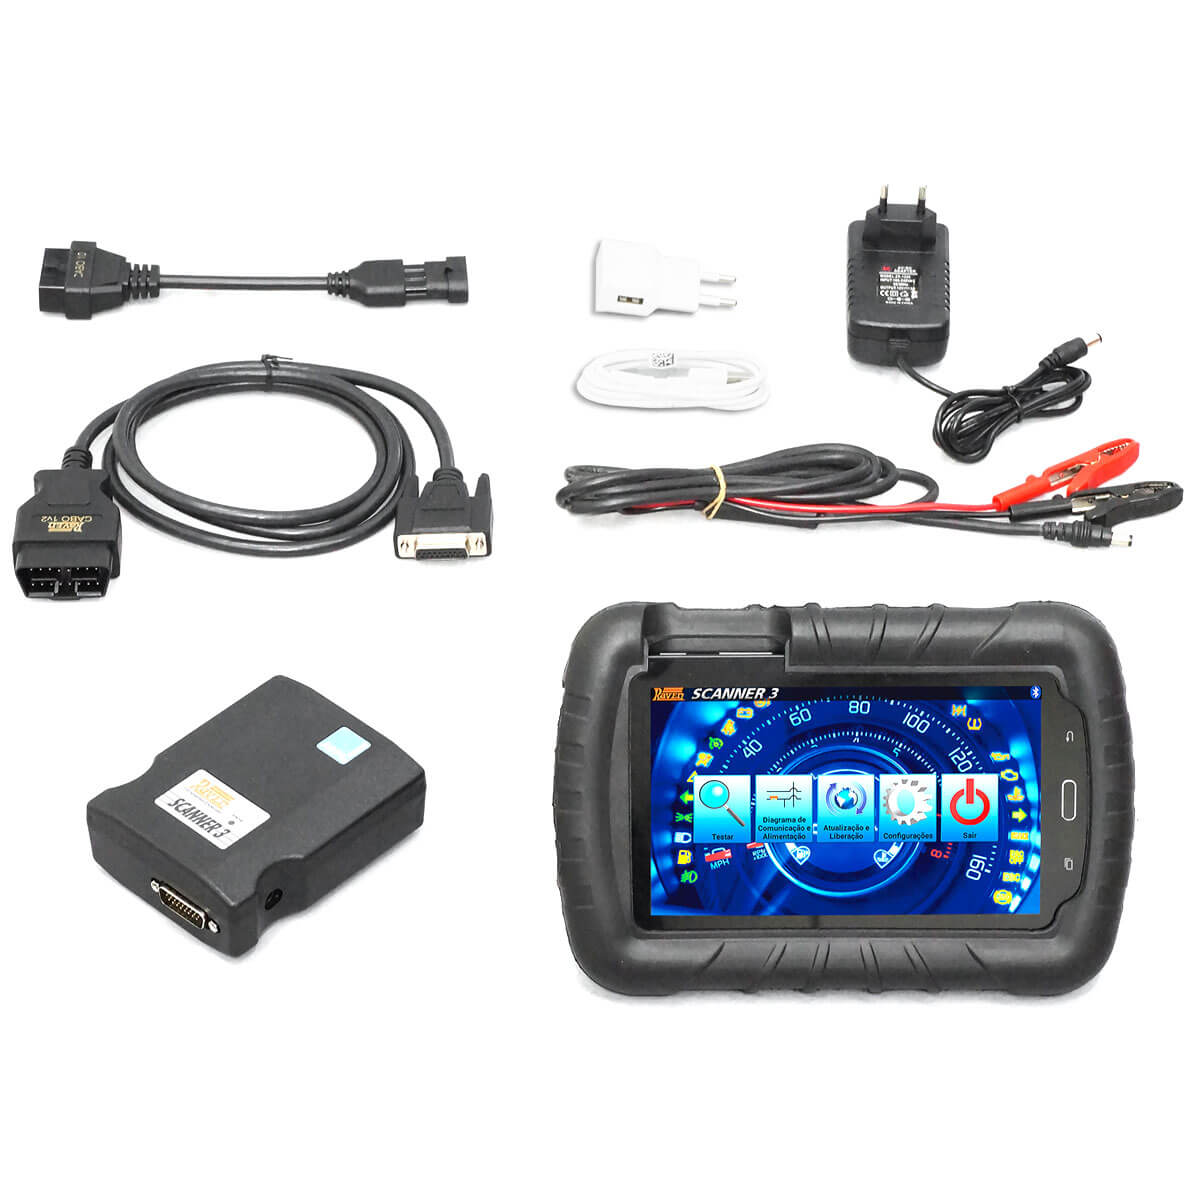 Scanner Automotivo Raven 3 com Tablet 7 Pol 108800 Raven